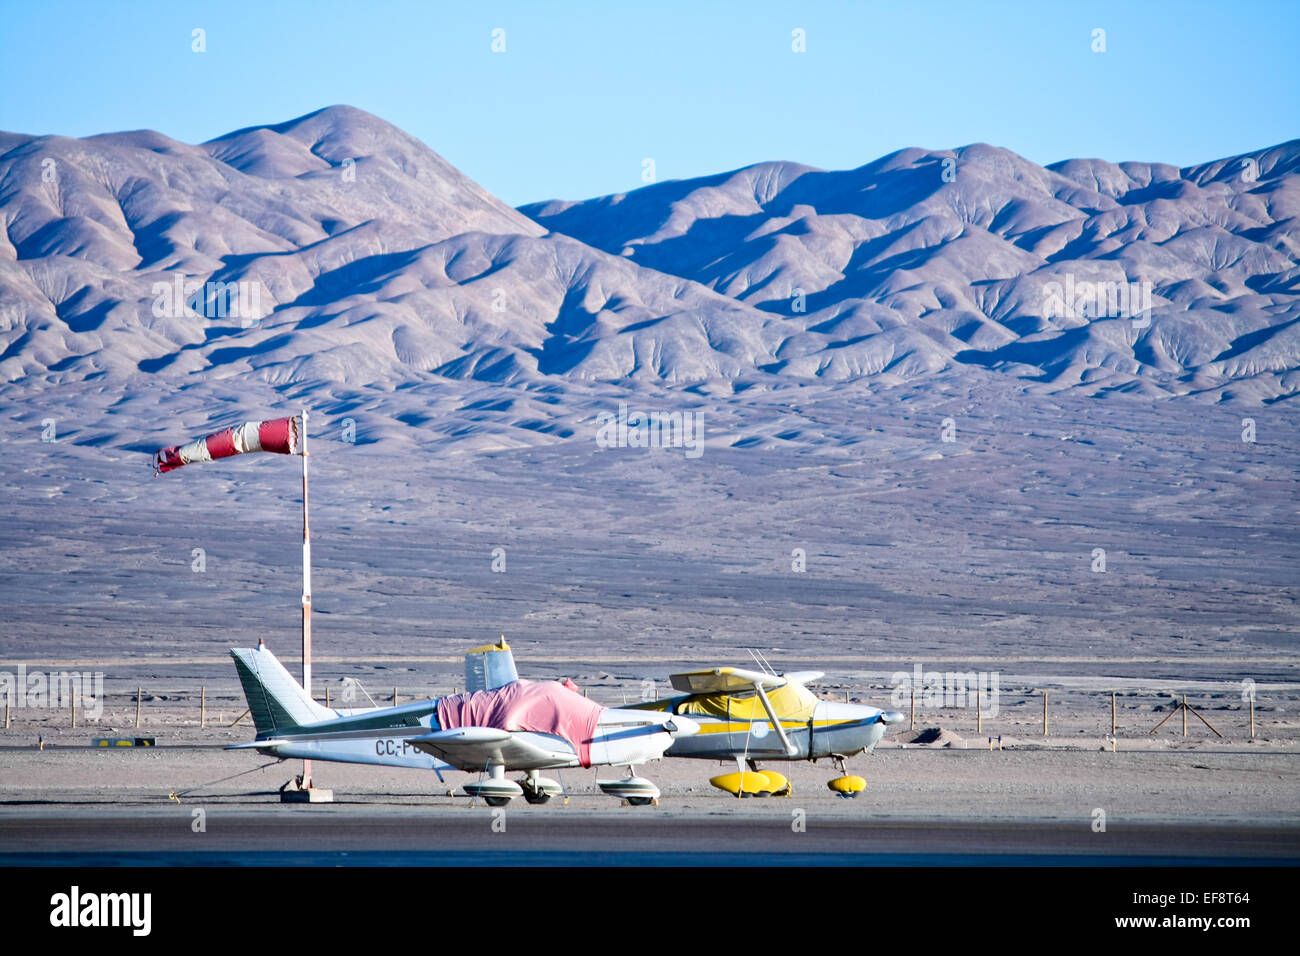 Two small airplanes at airport, Atacama Desert, Chile - Stock Image